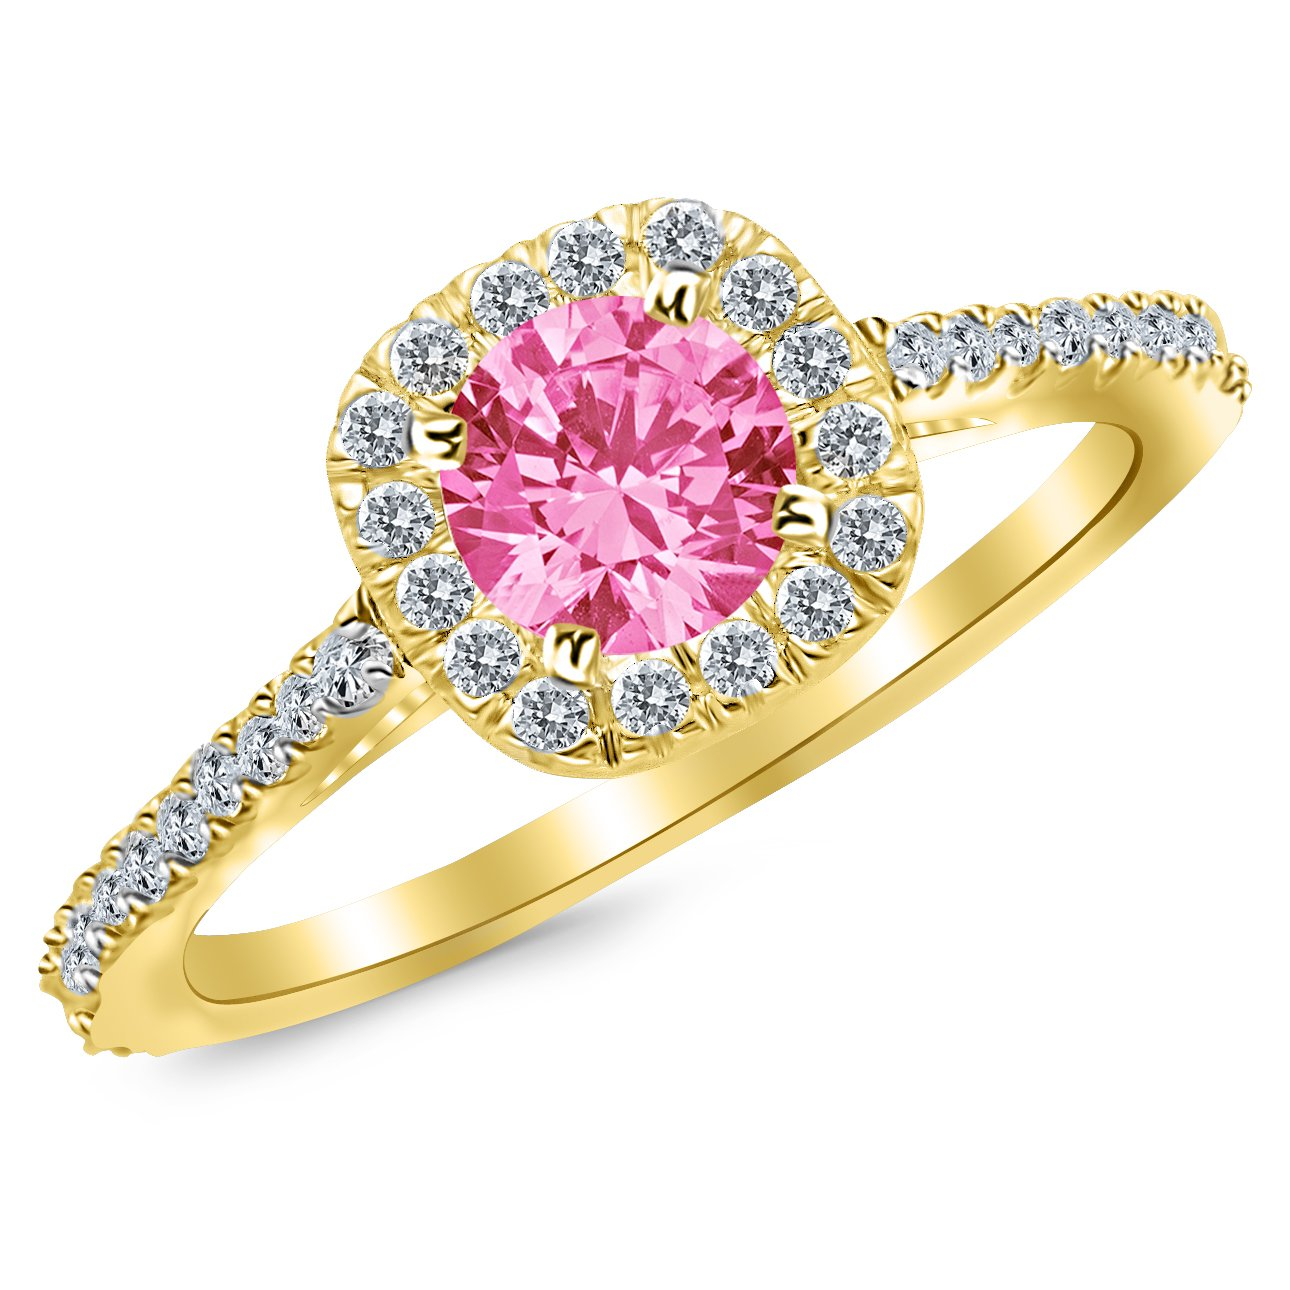 1.35 Carat 14K White Gold Gorgeous Classic Cushion Halo Style Diamond Engagement Ring with a 1 Carat Natural Pink Sapphire Center (Heirloom Quality)